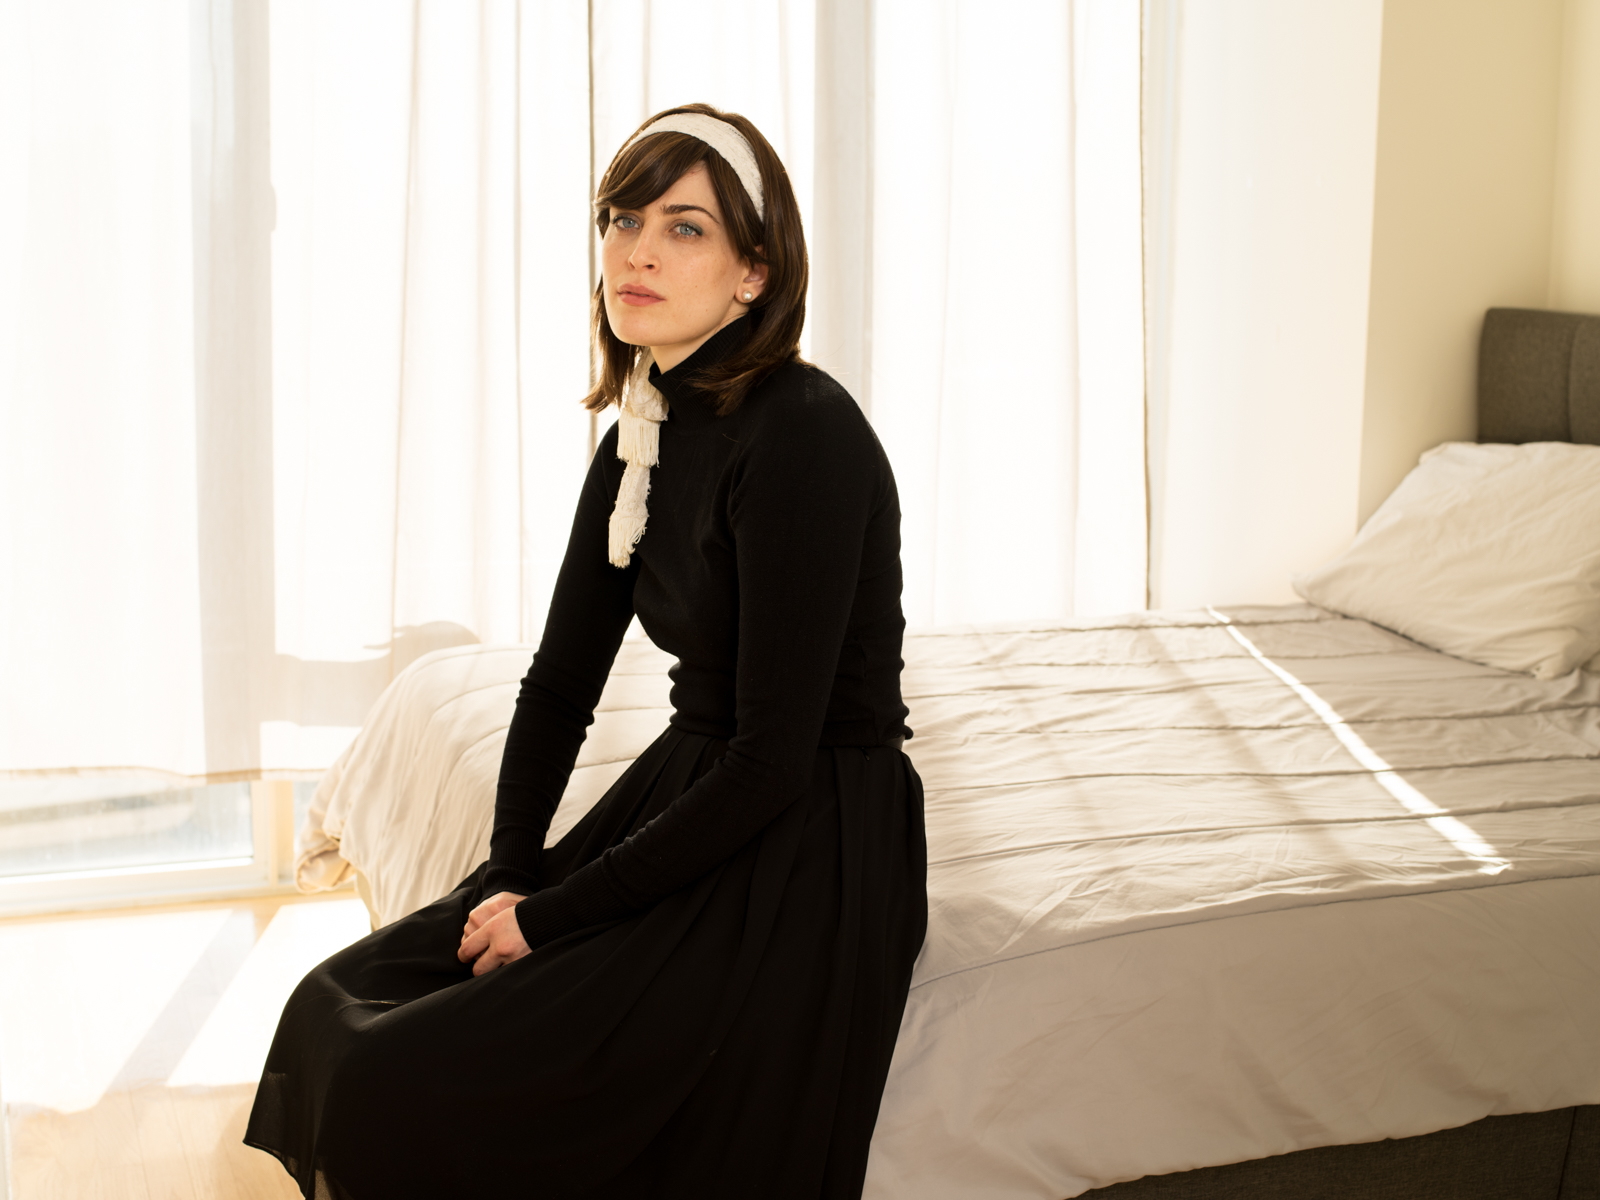 """Melissa Weisz   This is Melissa Weisz in her Williamsburg apartment wearing traditional Hasidic clothing. She dresses like this when she goes to visit her family who are still deeply religious. She left the Satmar community in Borough Park 10 years ago when she was 24 years old. She said leaving her community, especially her husband, parents, six sisters, and two brothers, was the most terrifying and liberating moment in her life. """"I wish I could've stayed. After trying for years, I was finally ready to lose and risk everything to live the life that felt right to me. But I had so much guilt and shame for leaving, hurting the people I love most. It was a painful process. My family is so important to me and I didn't want to hurt my husband. He's a good person. When I first left, I had a roommate who also left the religious community. She struggled a lot and took her own life. It was scary. I think my family worried that would happen to me if I felt alone and not supported. They have made a lot of effort to accept my choices and we've worked hard on our relationship. I don't feel alone, but I often feel like a foreigner in my own city. That's why most of my friends are European. Maybe we connect as outsiders living in this big unfamiliar world together""""."""